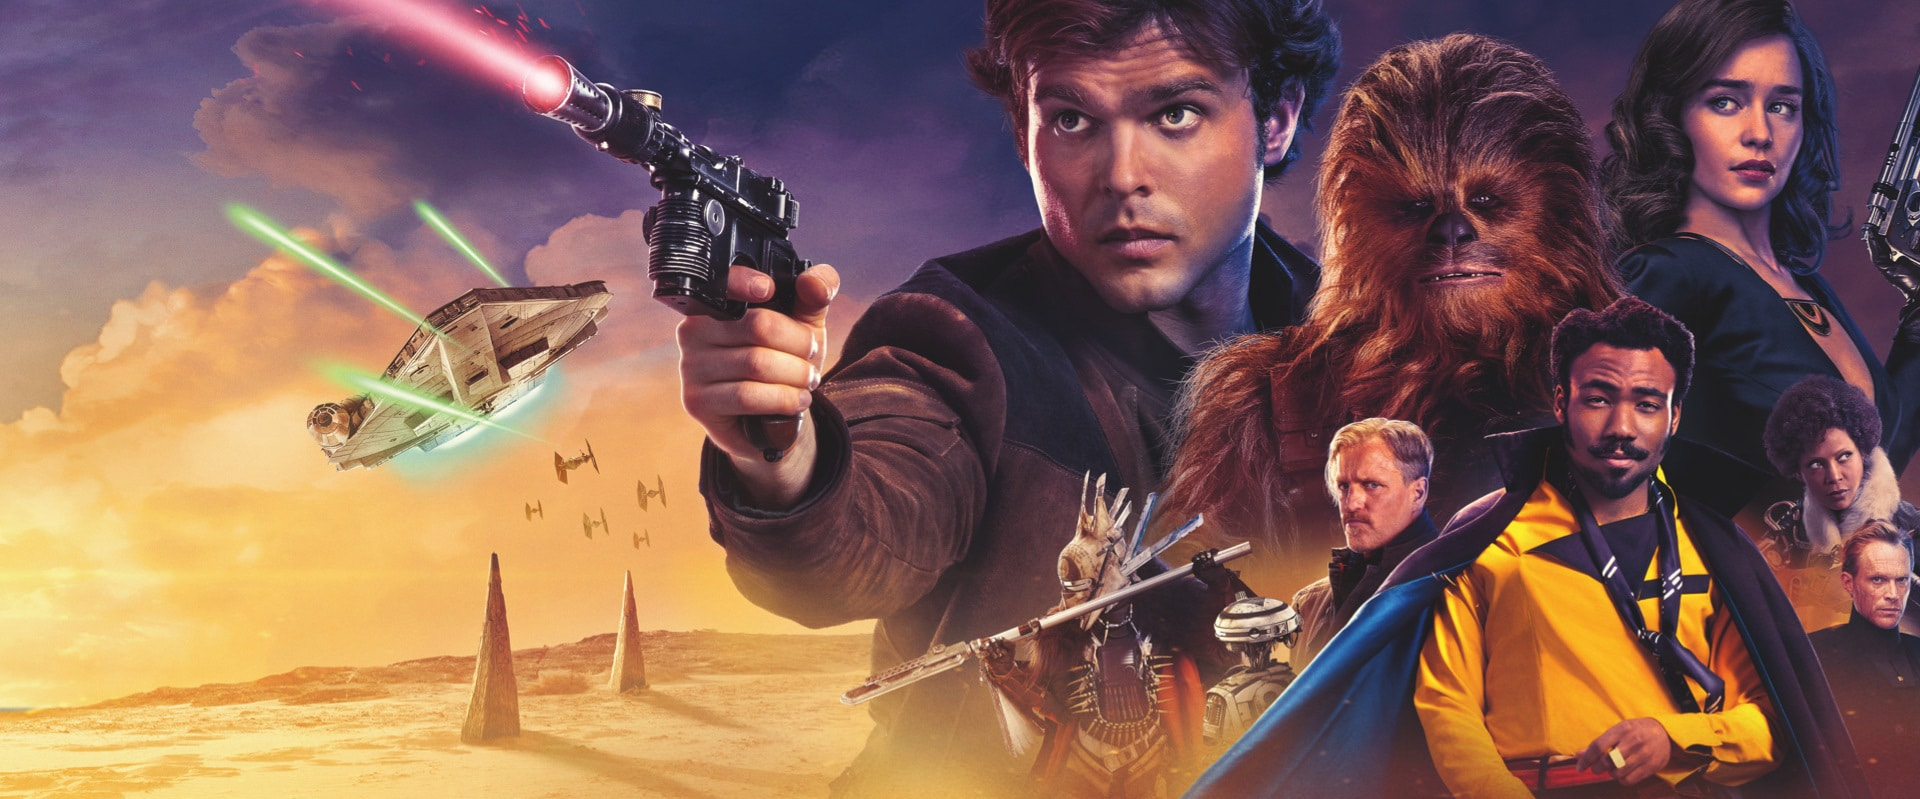 Han Solo: Bir Star Wars Hikayesi | Movie Trailer